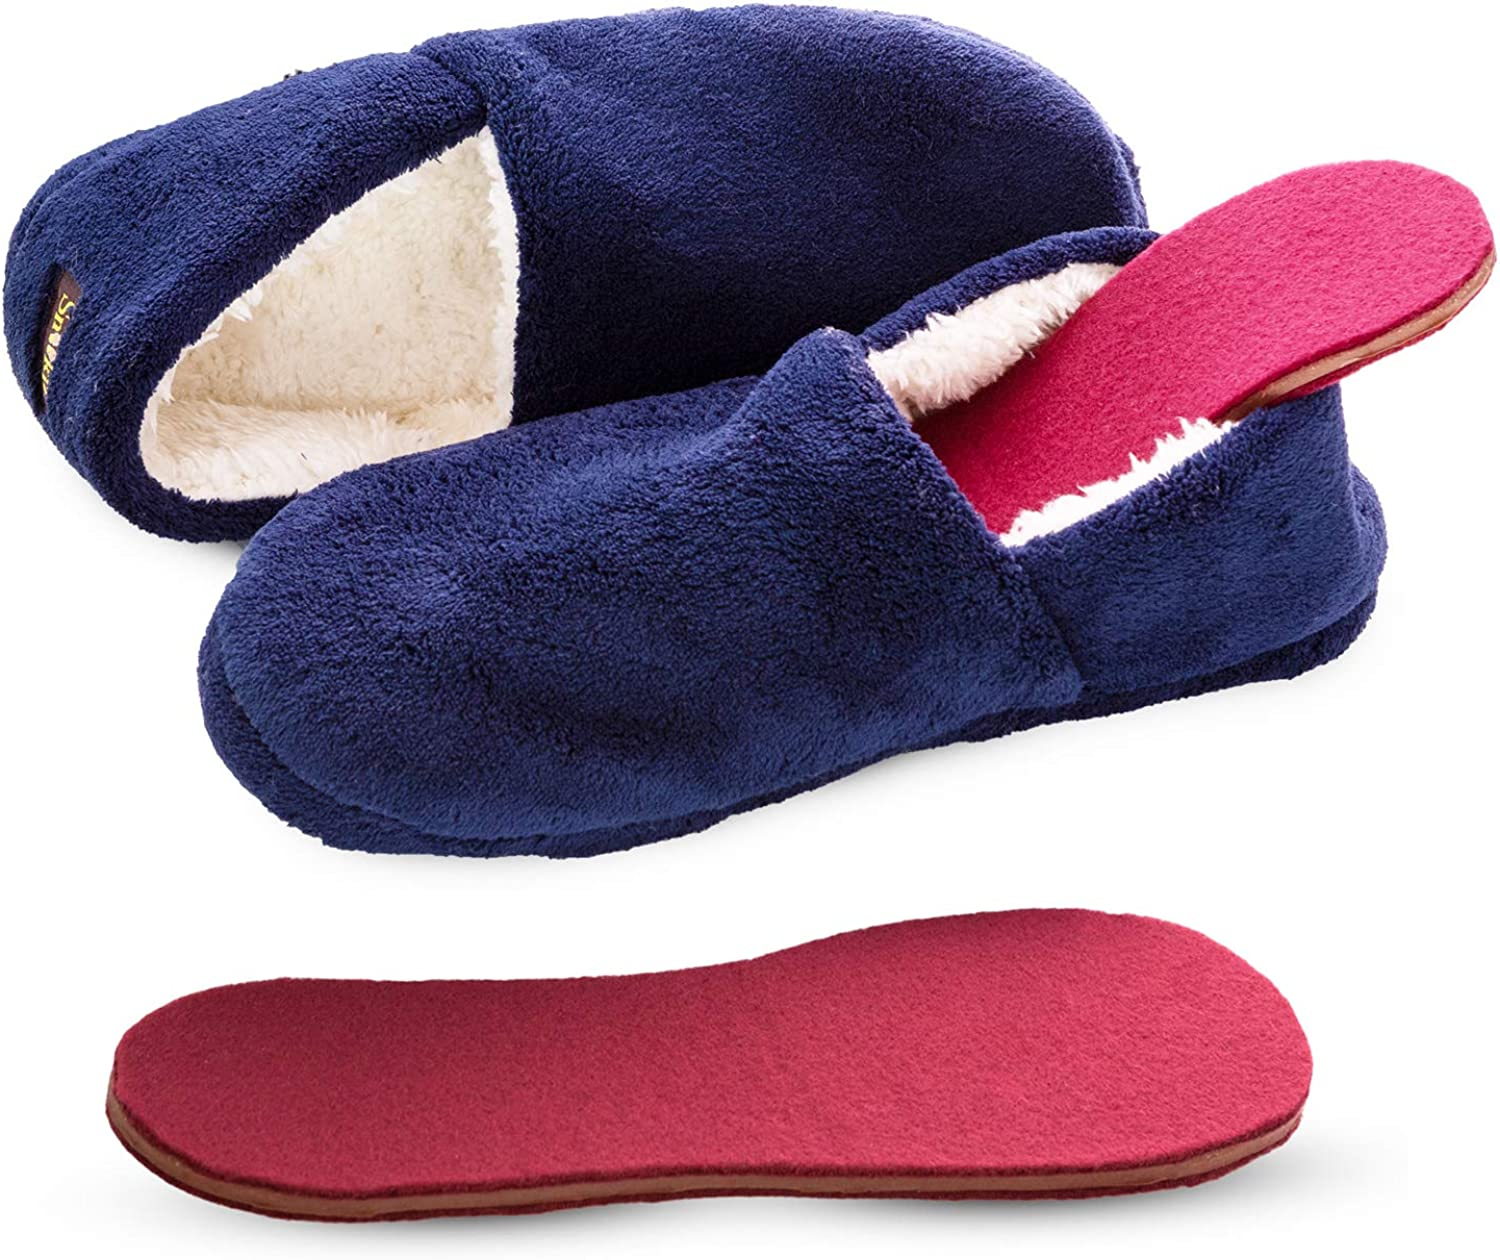 Snook-Ease Microwavable Heated Slippers Feet Warmers Booties with Heated Insole Inserts for Instantly Warm Feet - Reusable Reheatable Washable - Promotes Good Night's Sleep – Low Cut